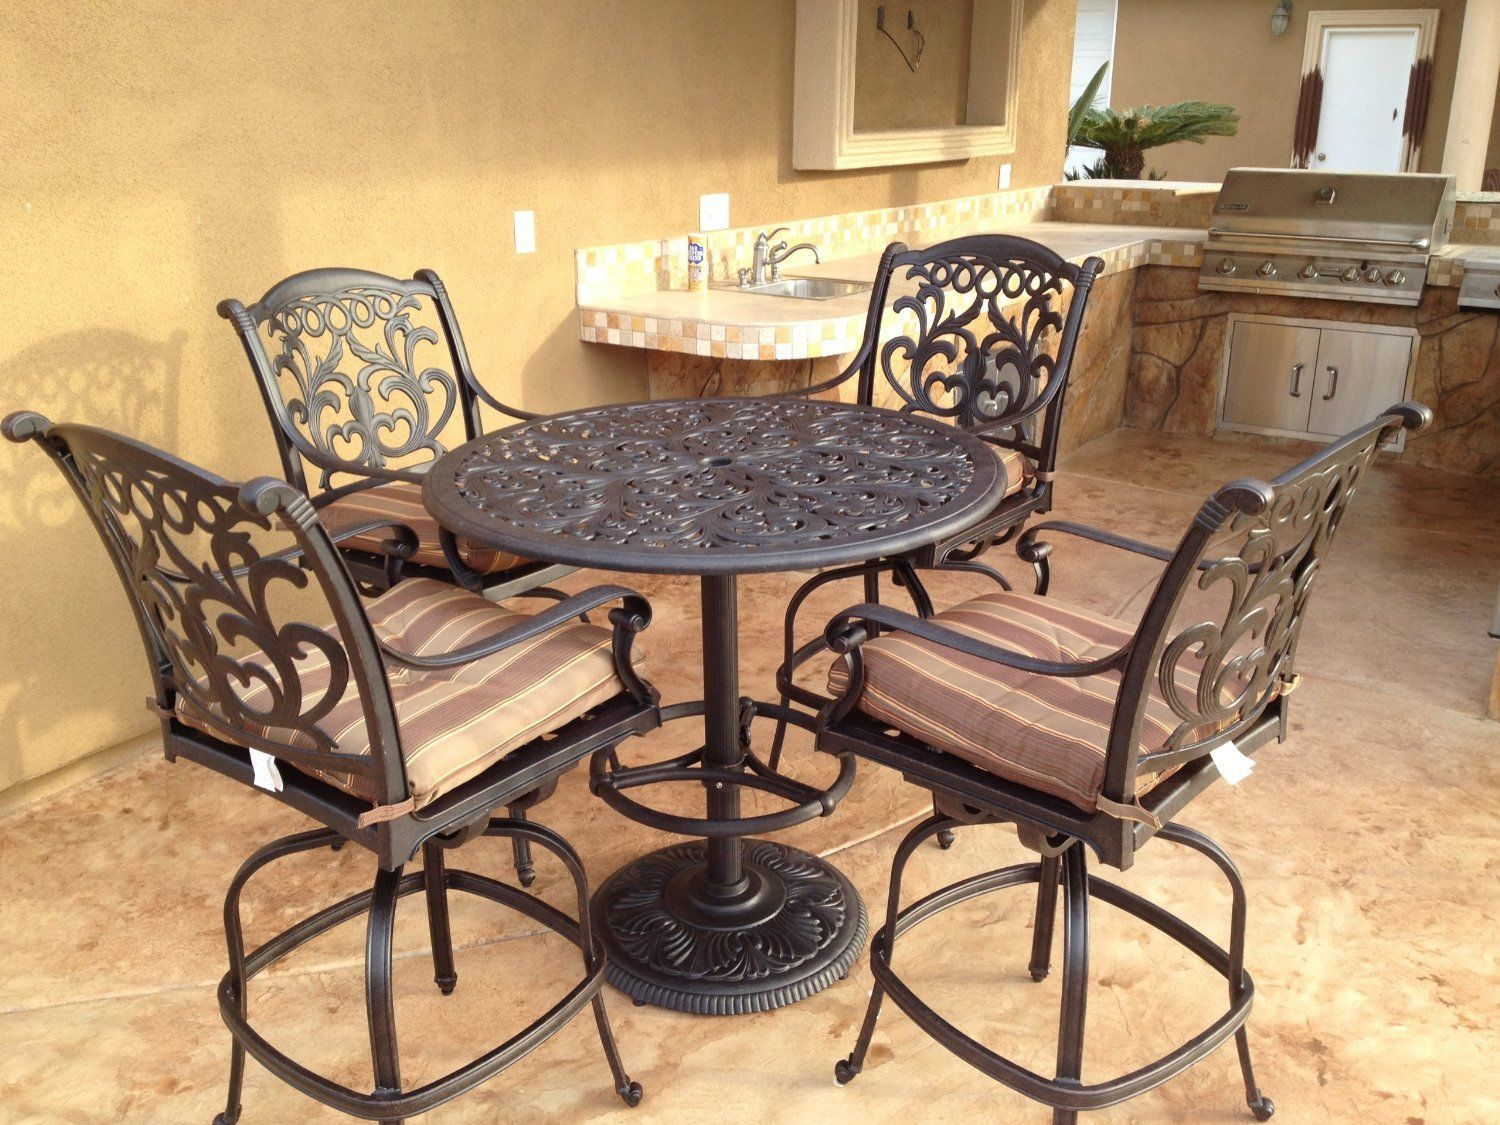 "Flamingo Cast Aluminum 5pc Outdoor Patio Bar Set with 42"" Round Bar Table"